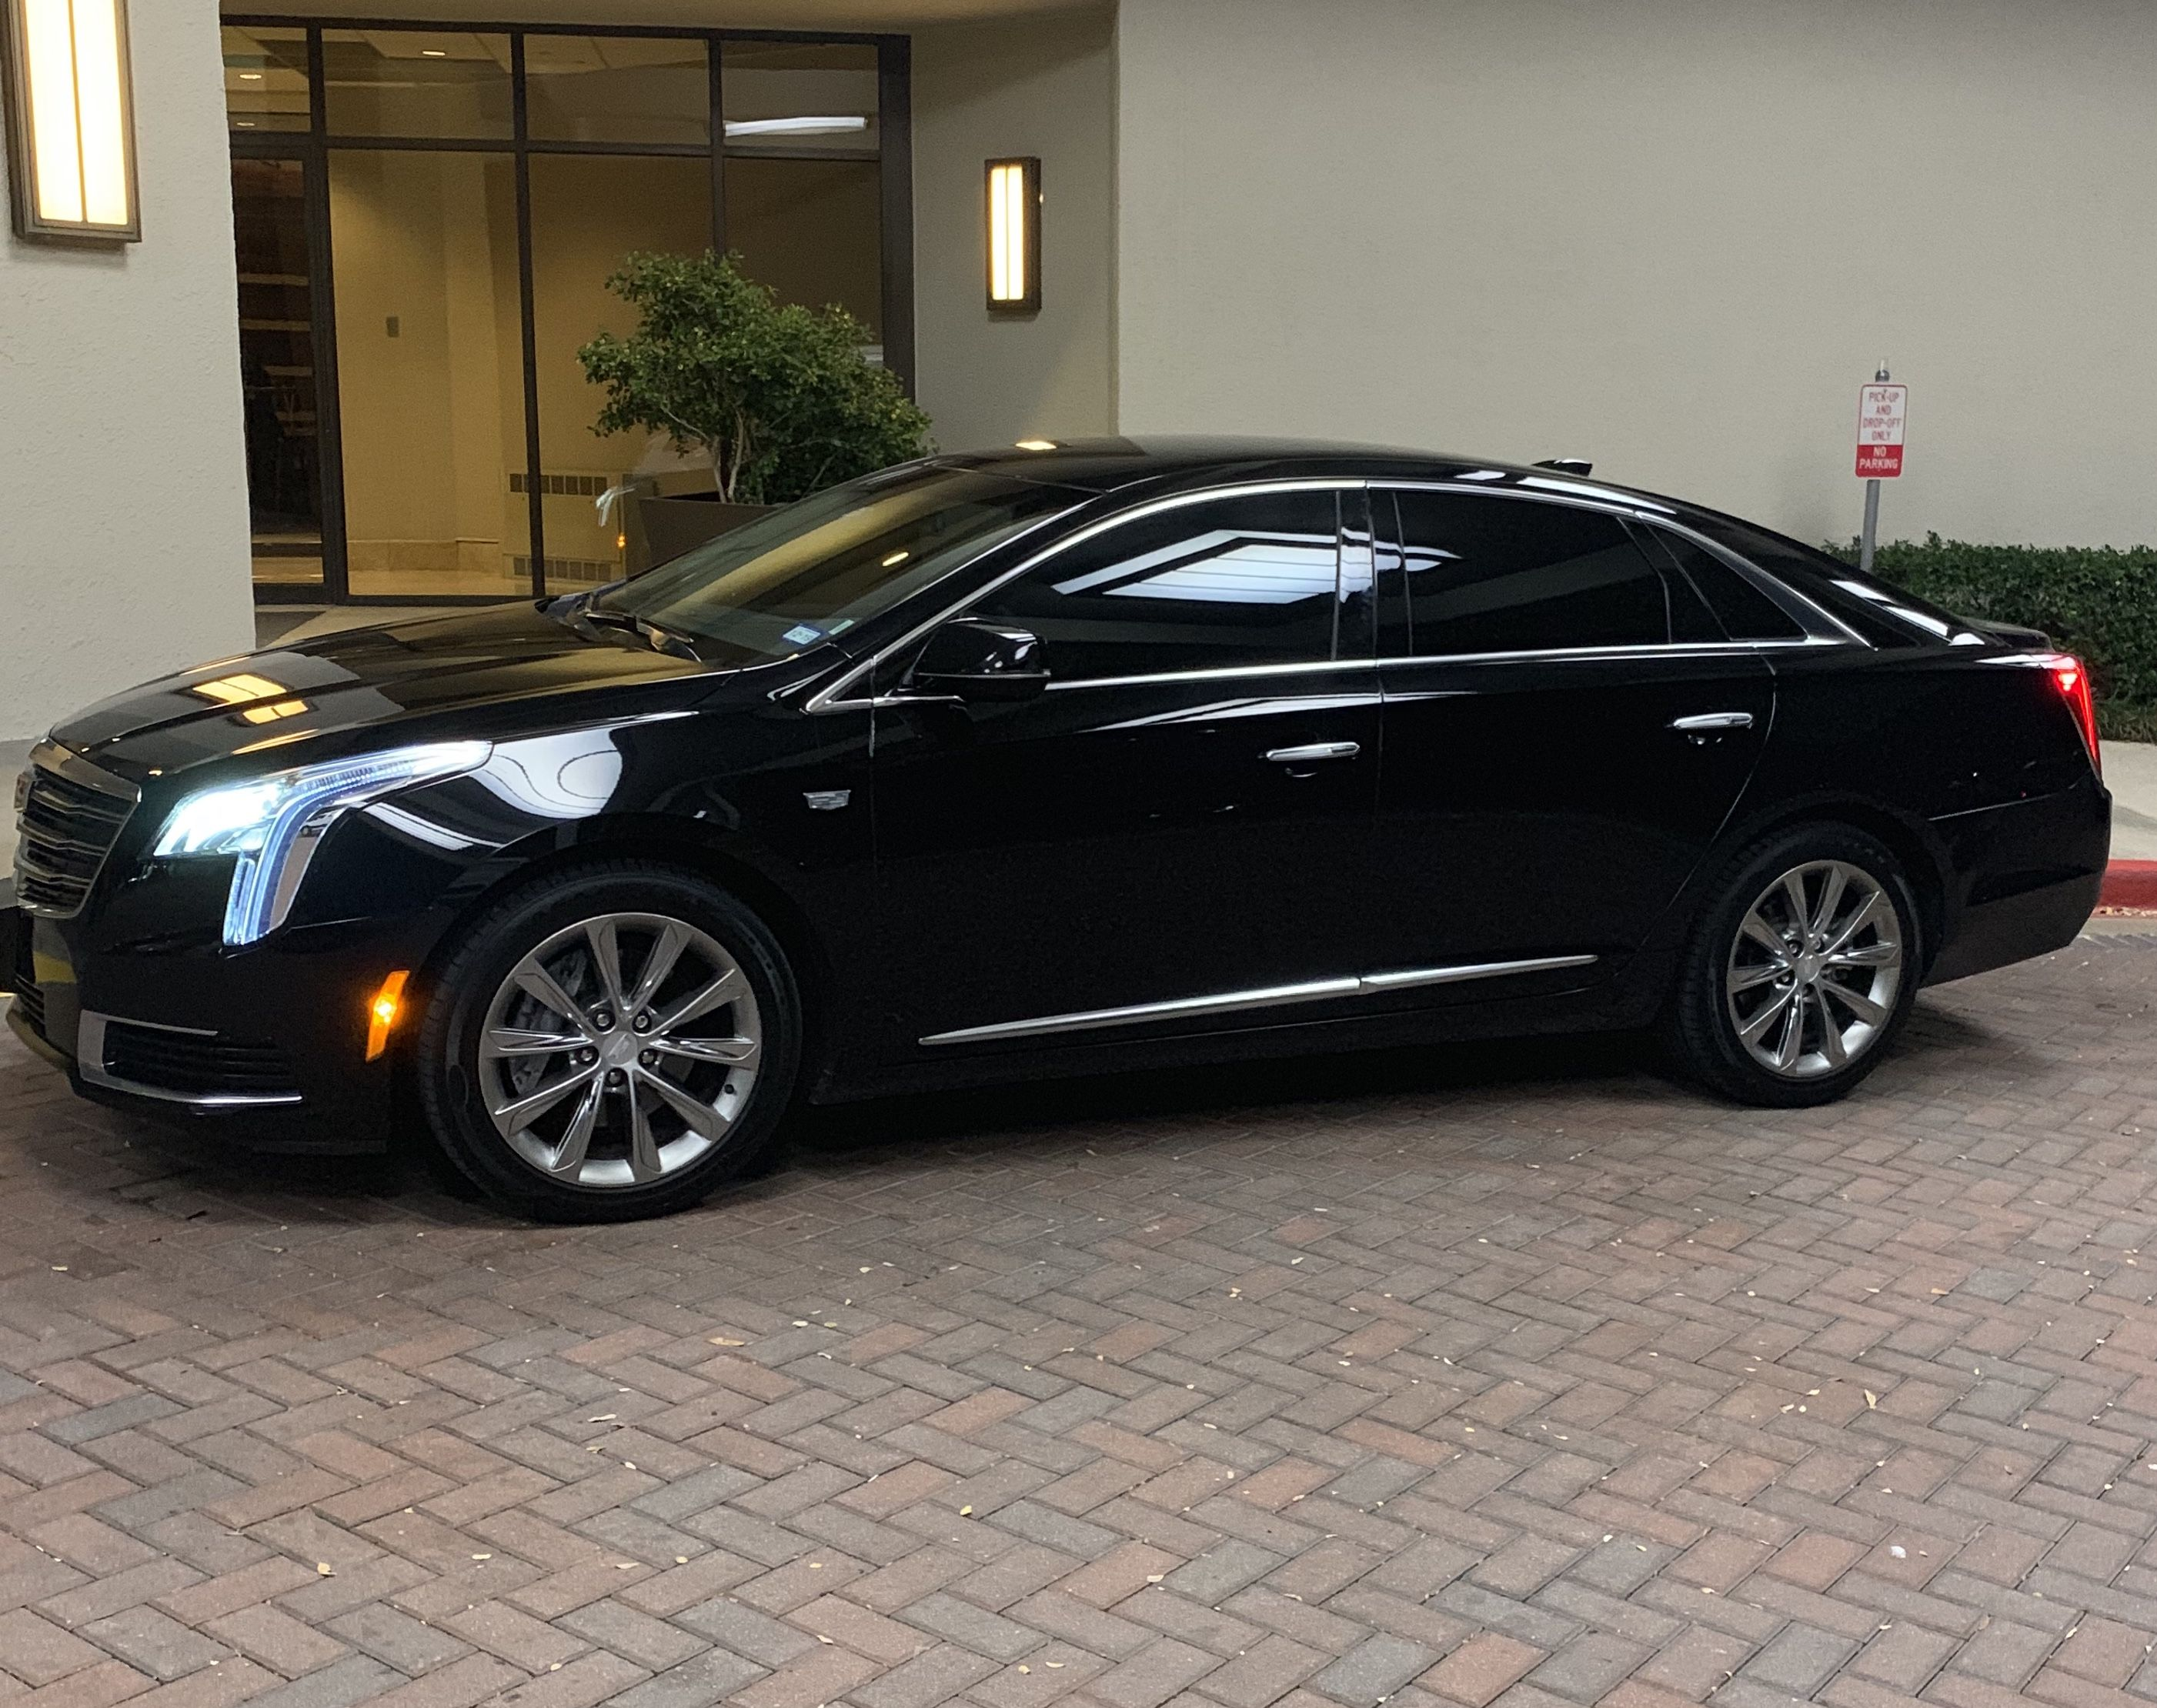 Hire Dfw And Fort Worth Town Airport Car Cab And Shuttle And Limo Service From Dfw Limo And Car Service Dfw Black Ca Black Car Service Luxury Car Rental Car